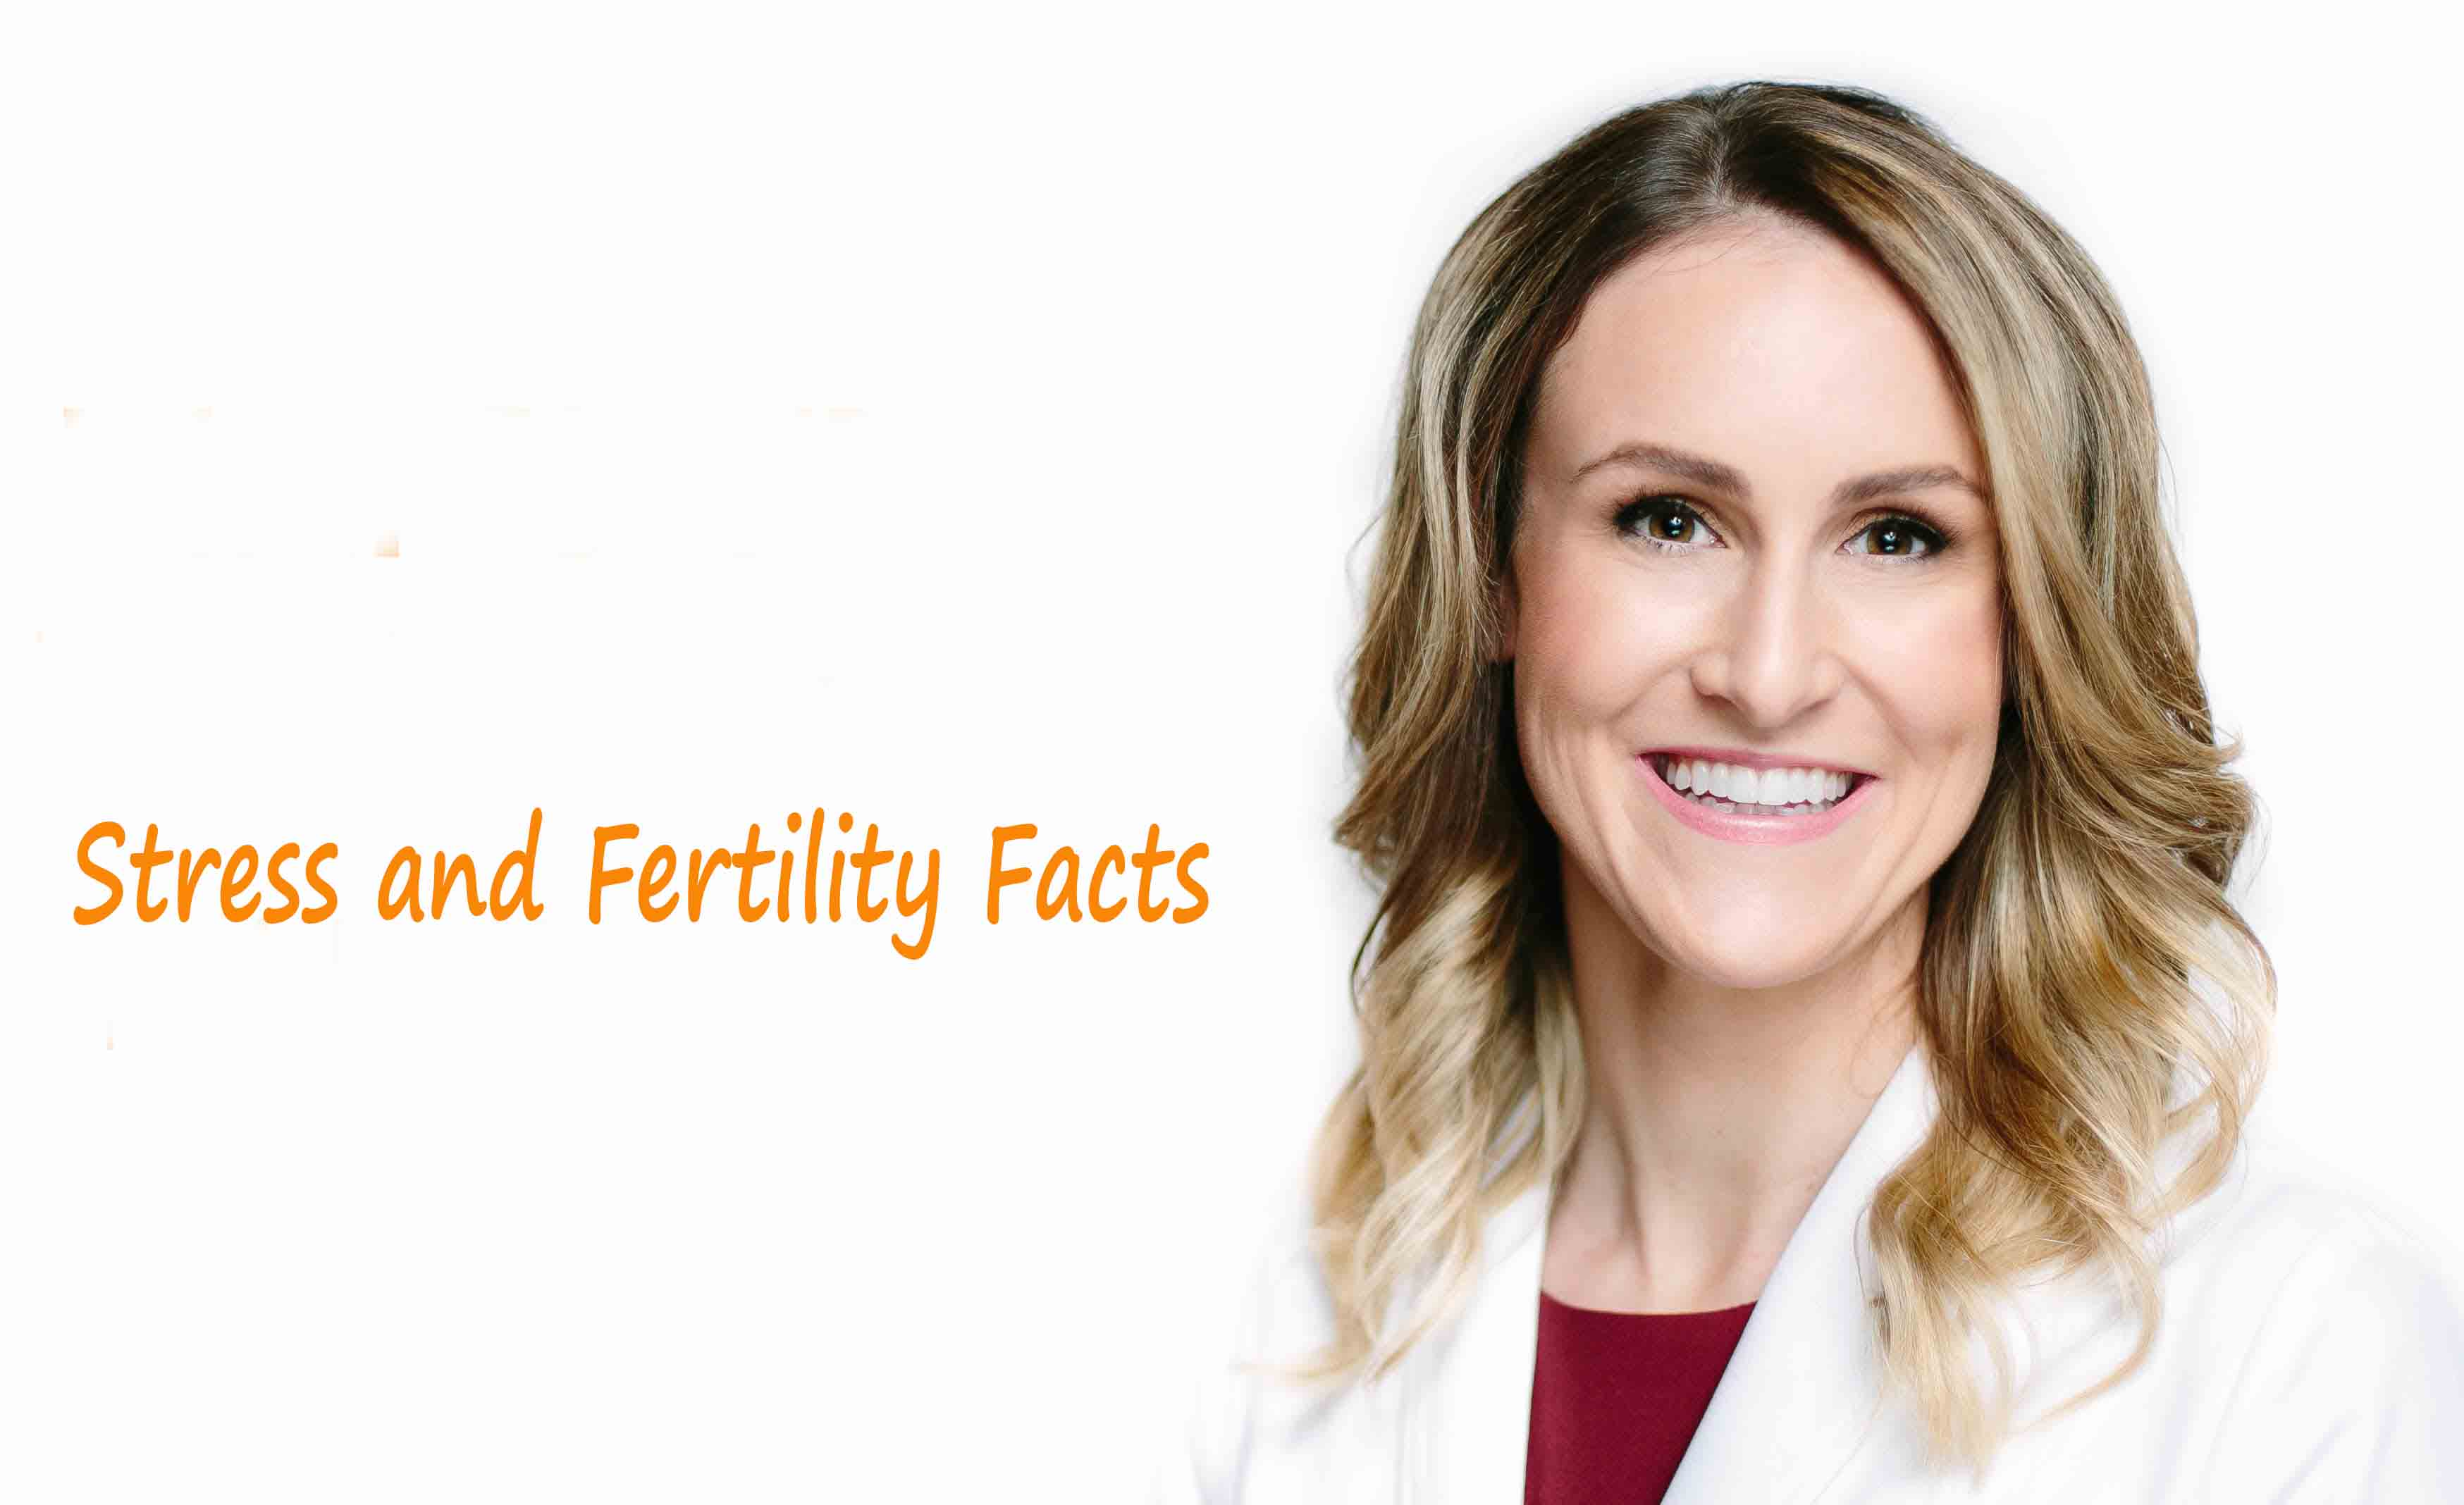 Stress and Fertility Facts of Getting Pregnant